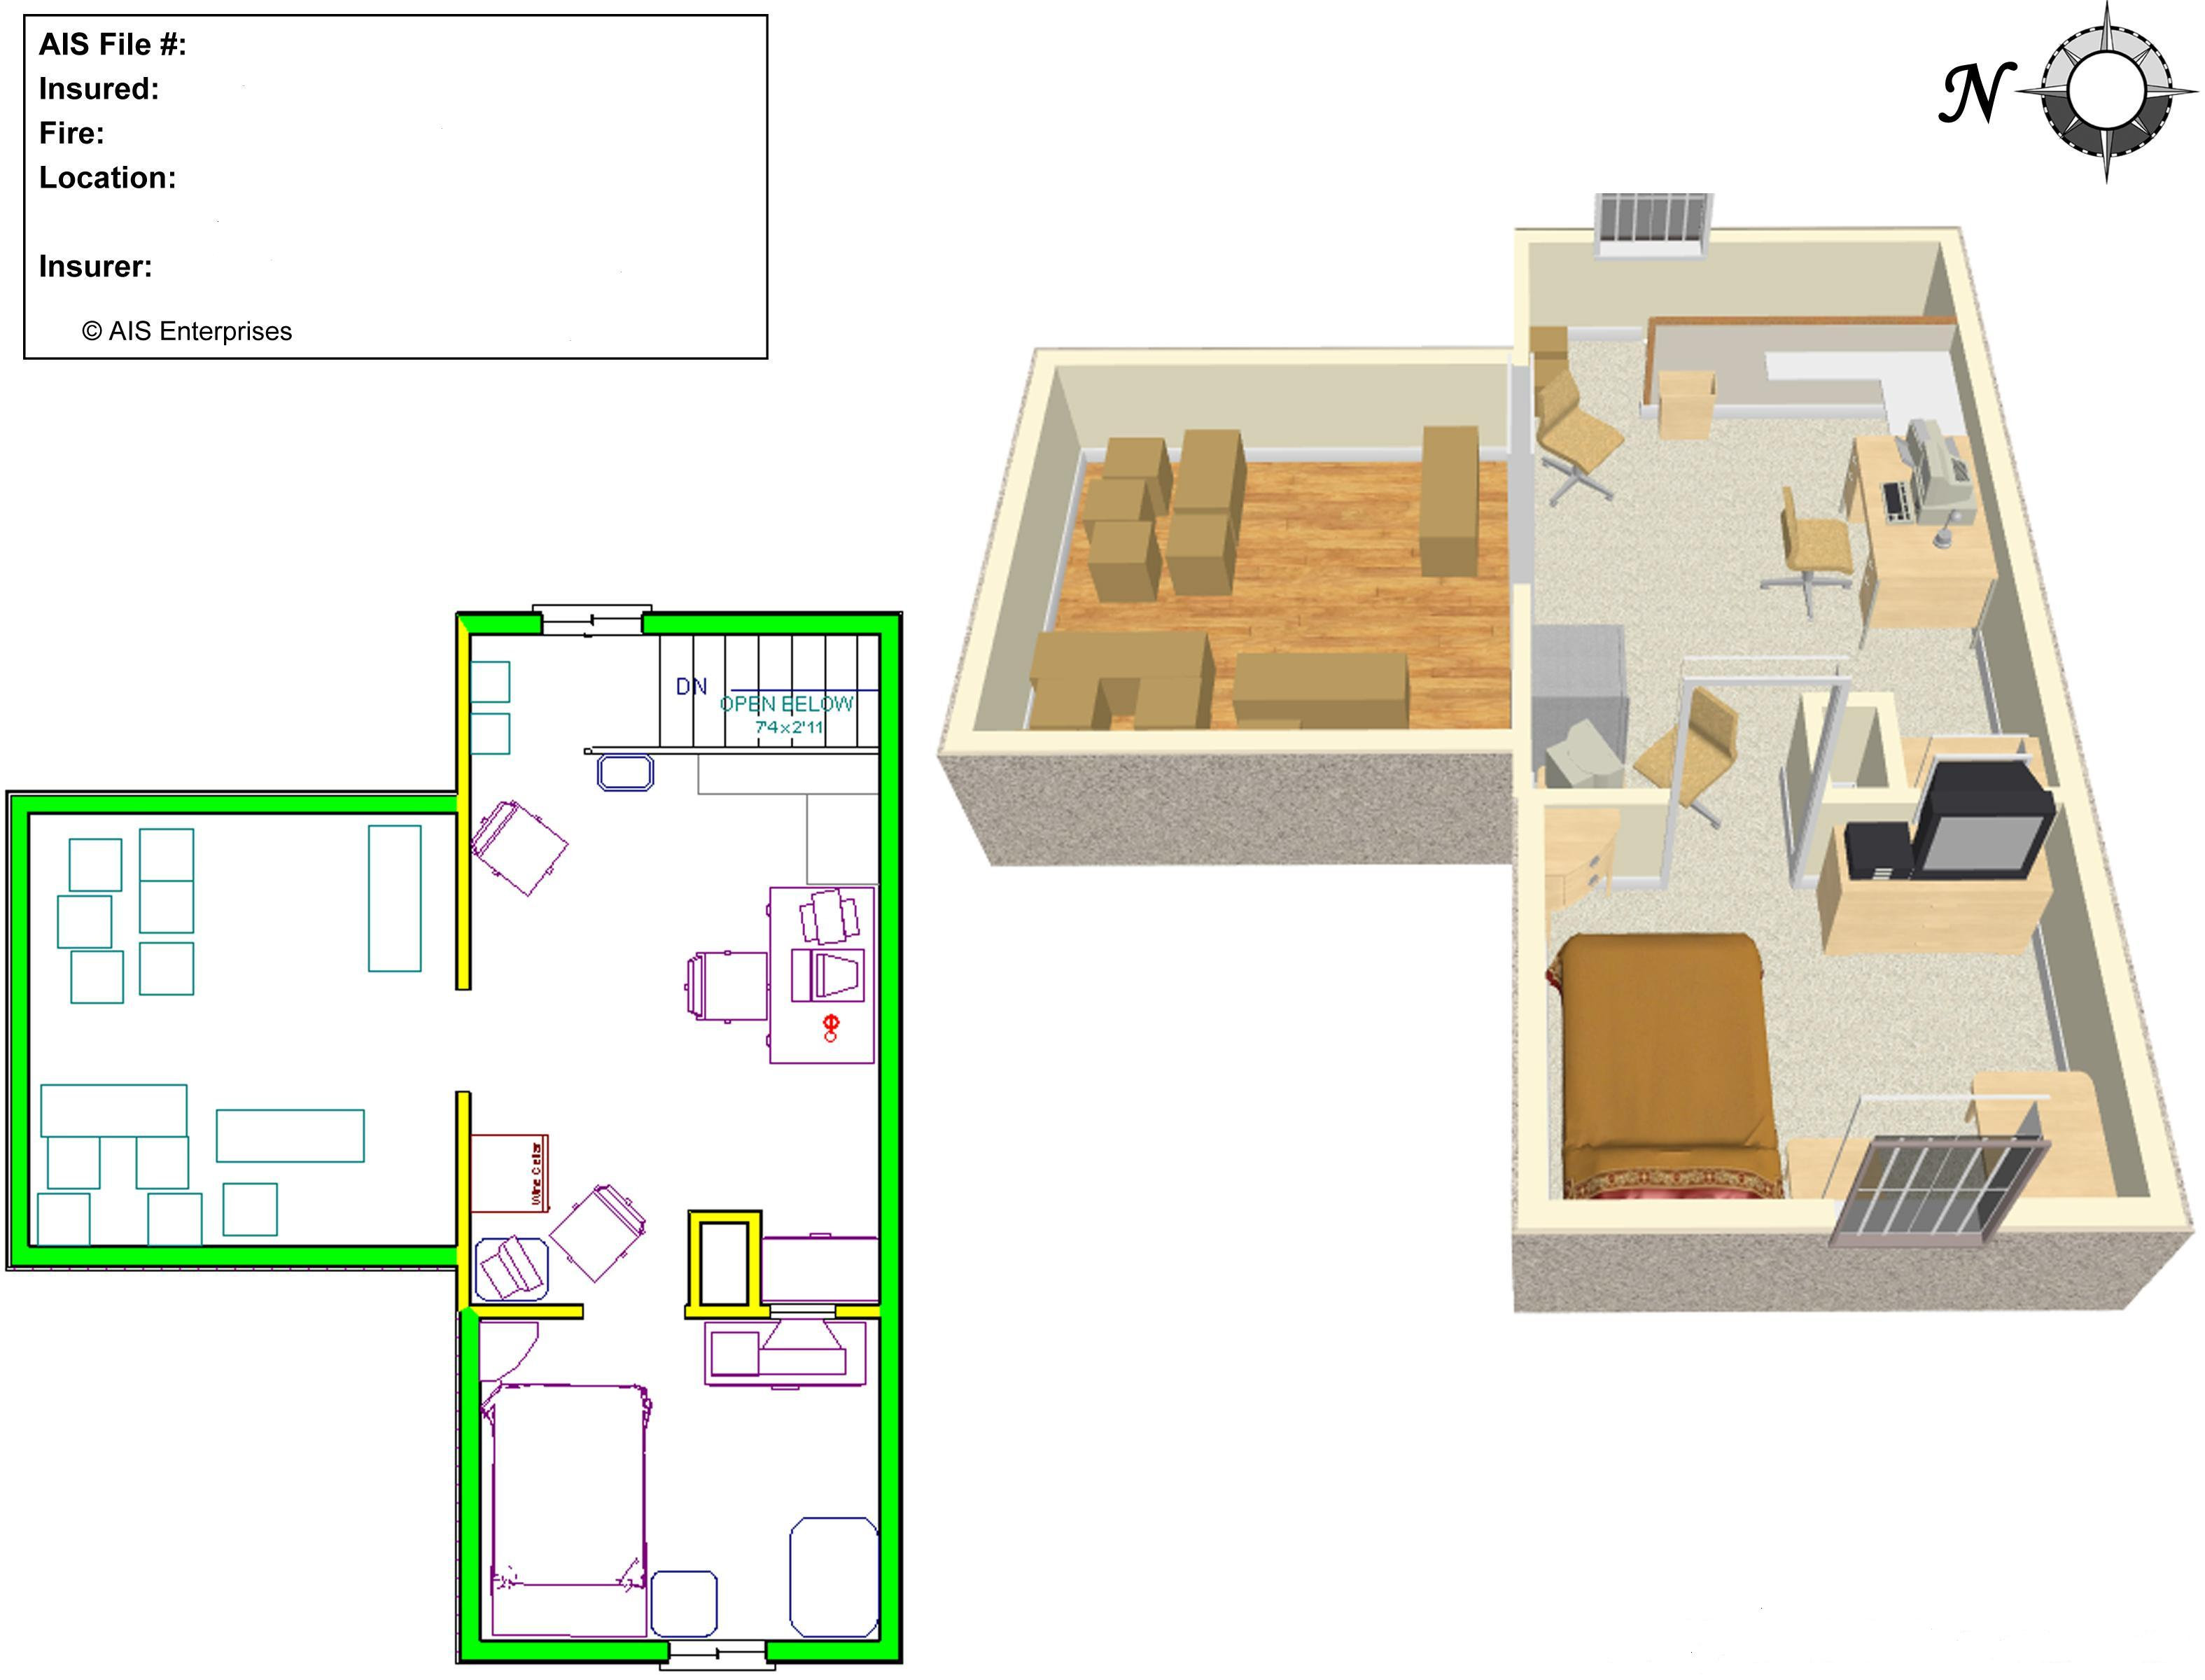 sample plan drawings - 3d Plan Drawing